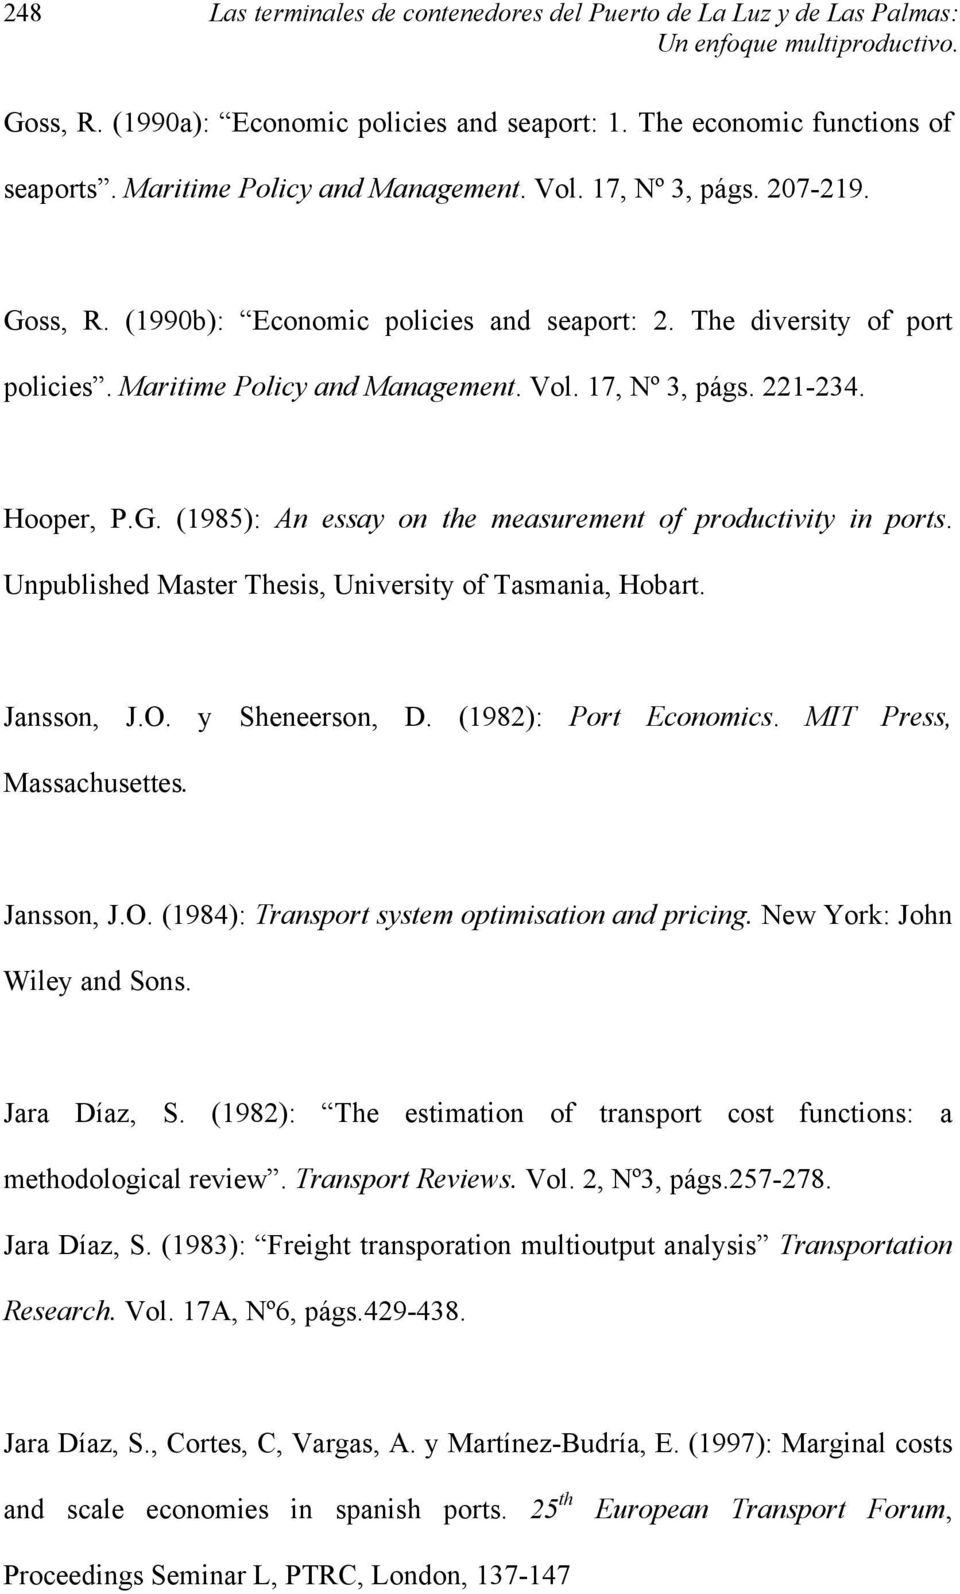 Hooper, P.G. (1985): An essay on the measurement of productivity in ports. Unpublished Master Thesis, University of Tasmania, Hobart. Jansson, J.O. y Sheneerson, D. (1982): Port Economics.